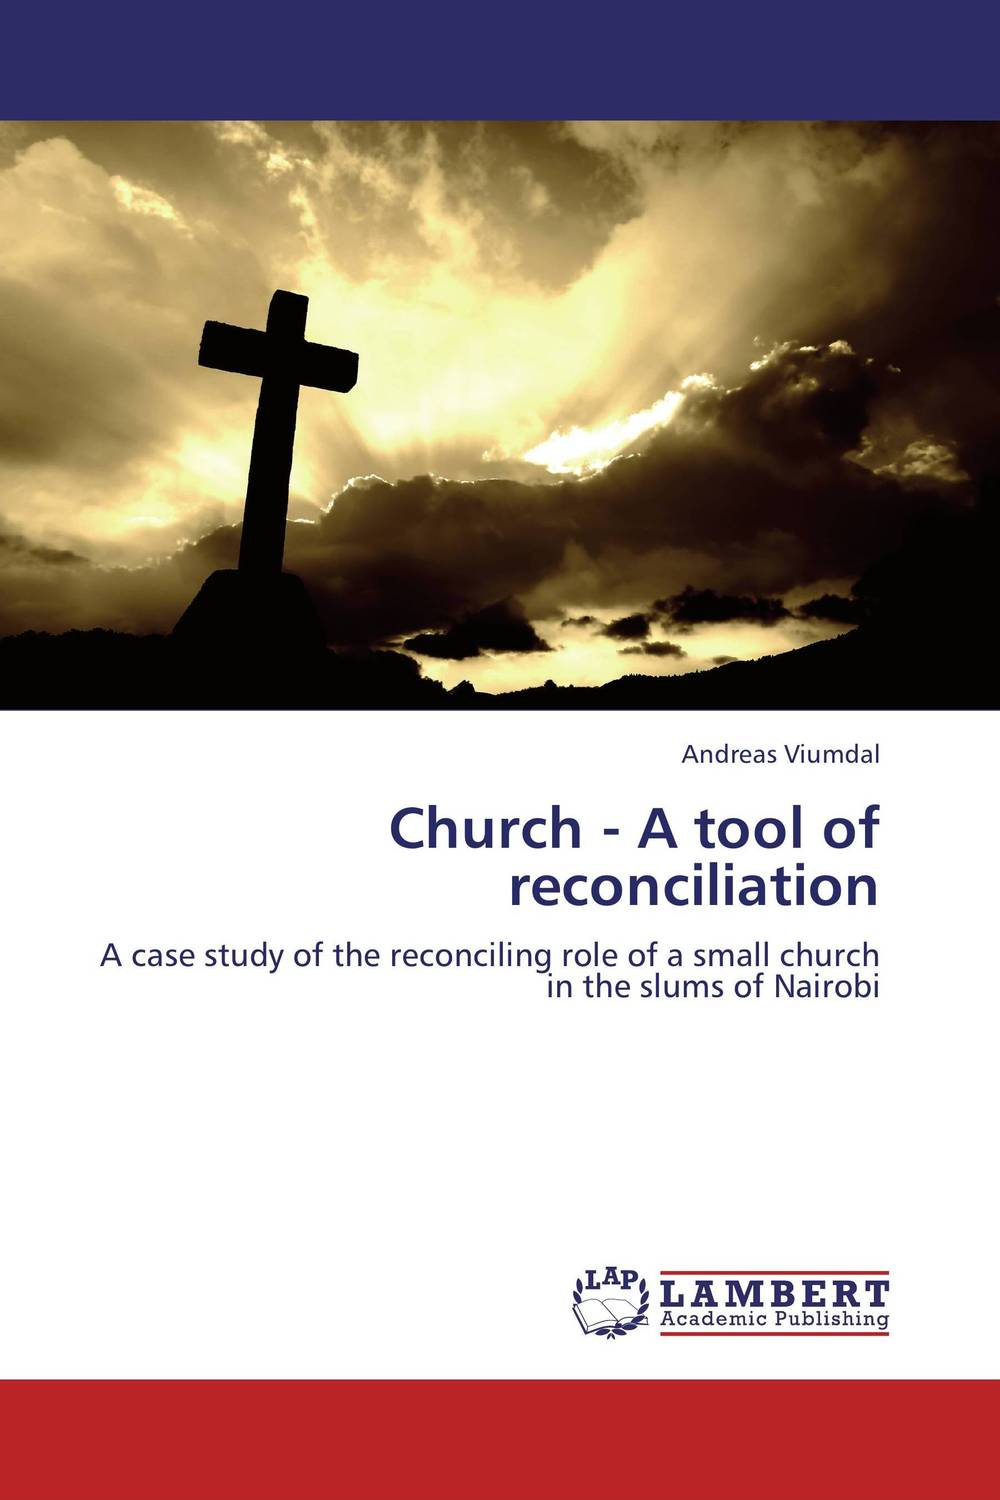 Church - A tool of reconciliation